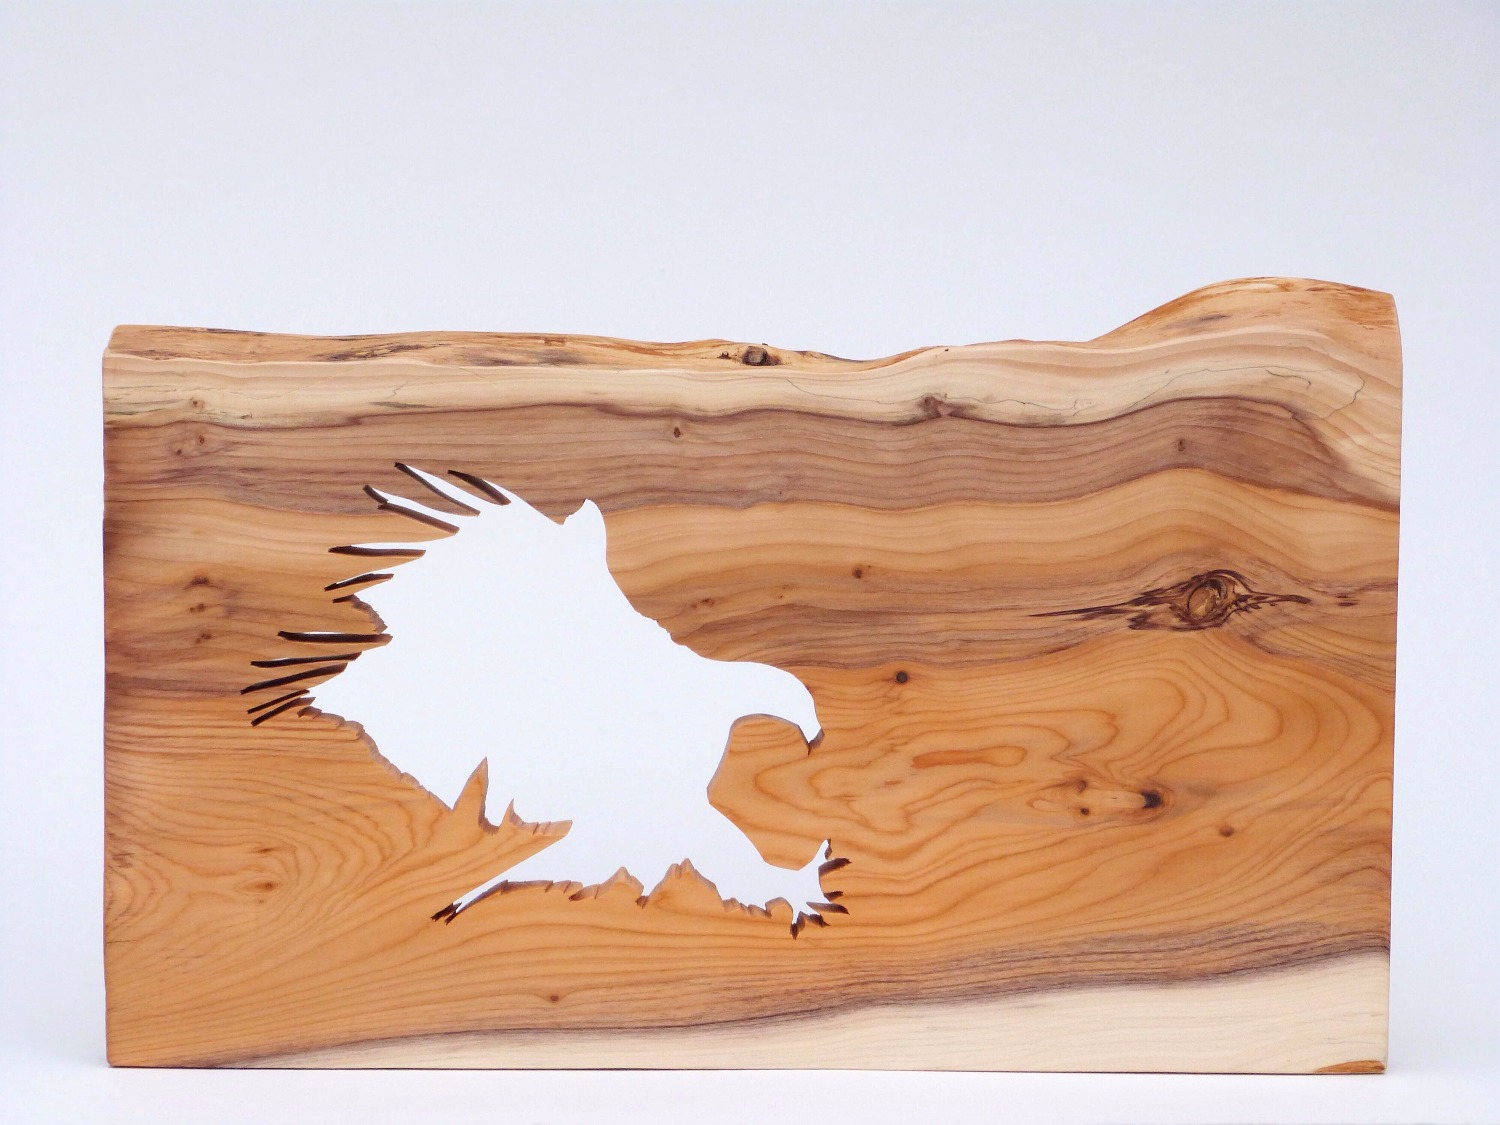 Eagle silhouette sculpture on yew wood